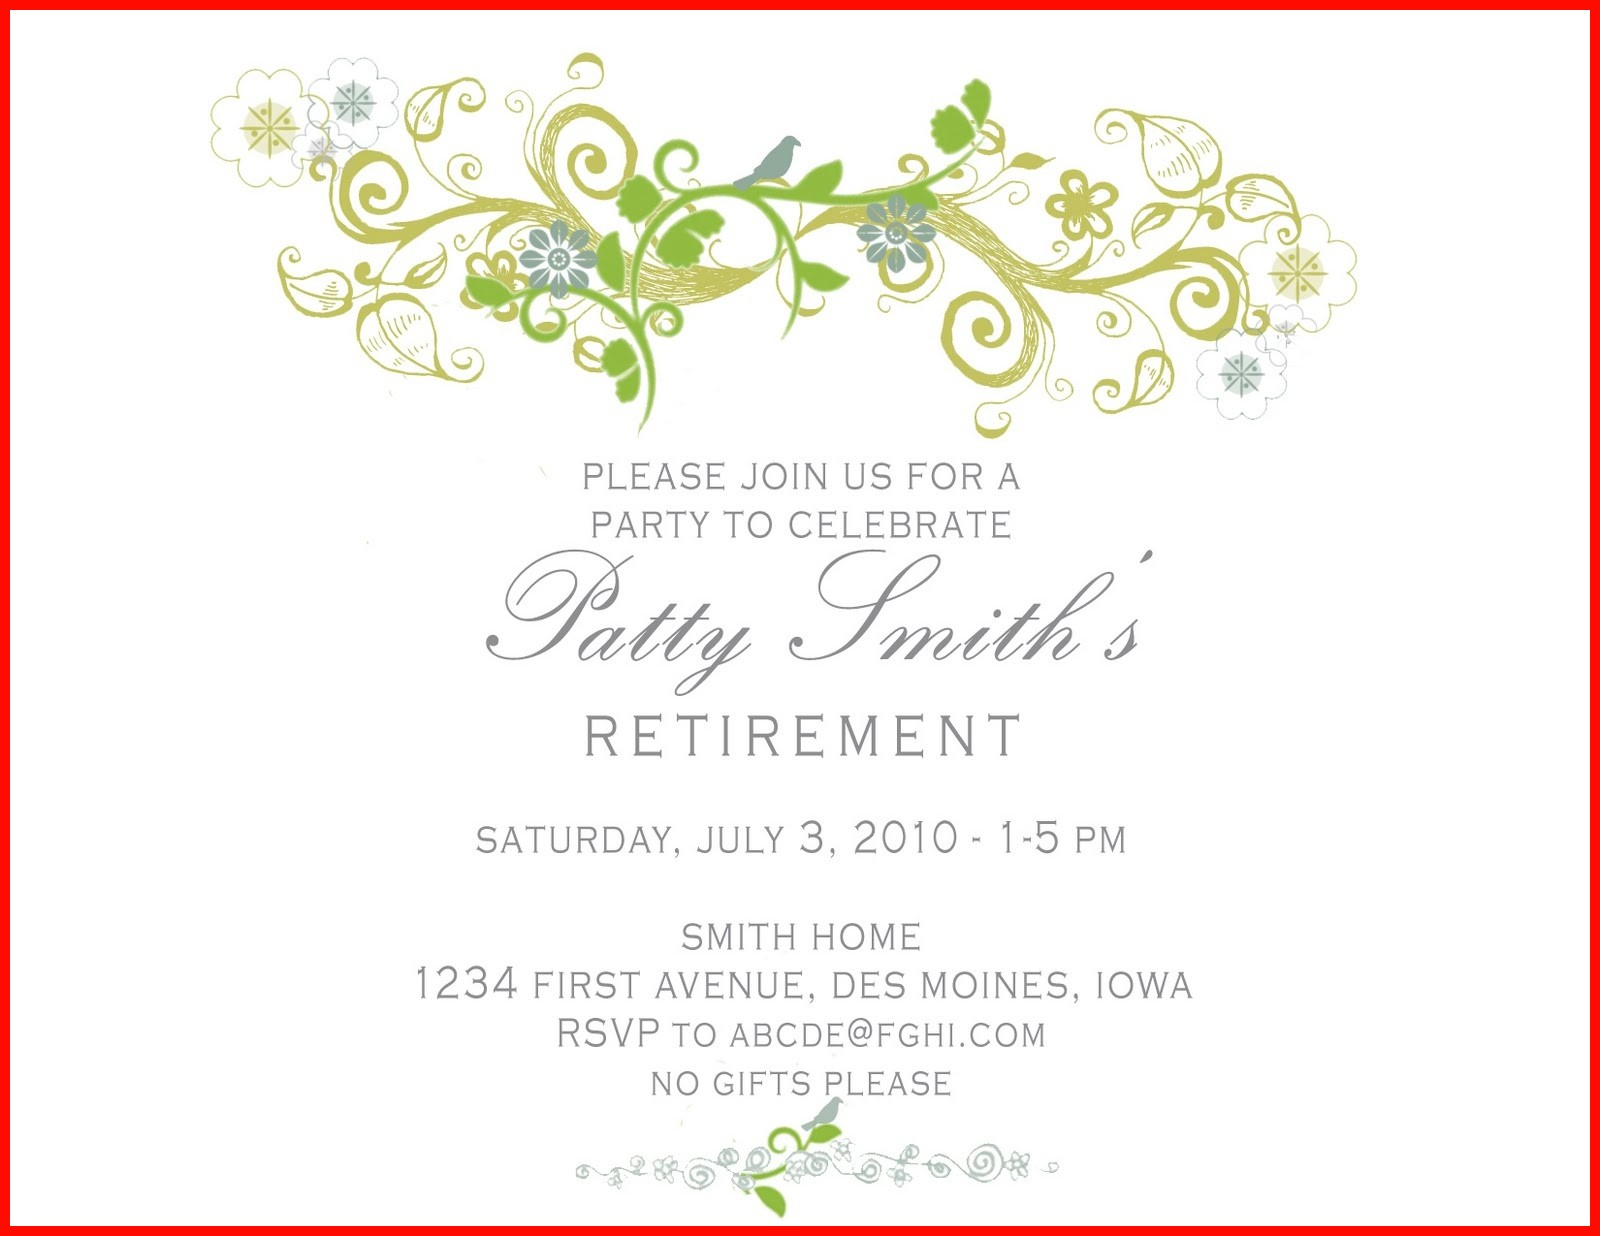 Retirement Celebration Invitation Template 113457 Retirement Party Invitation Wording For Teachers Elegant